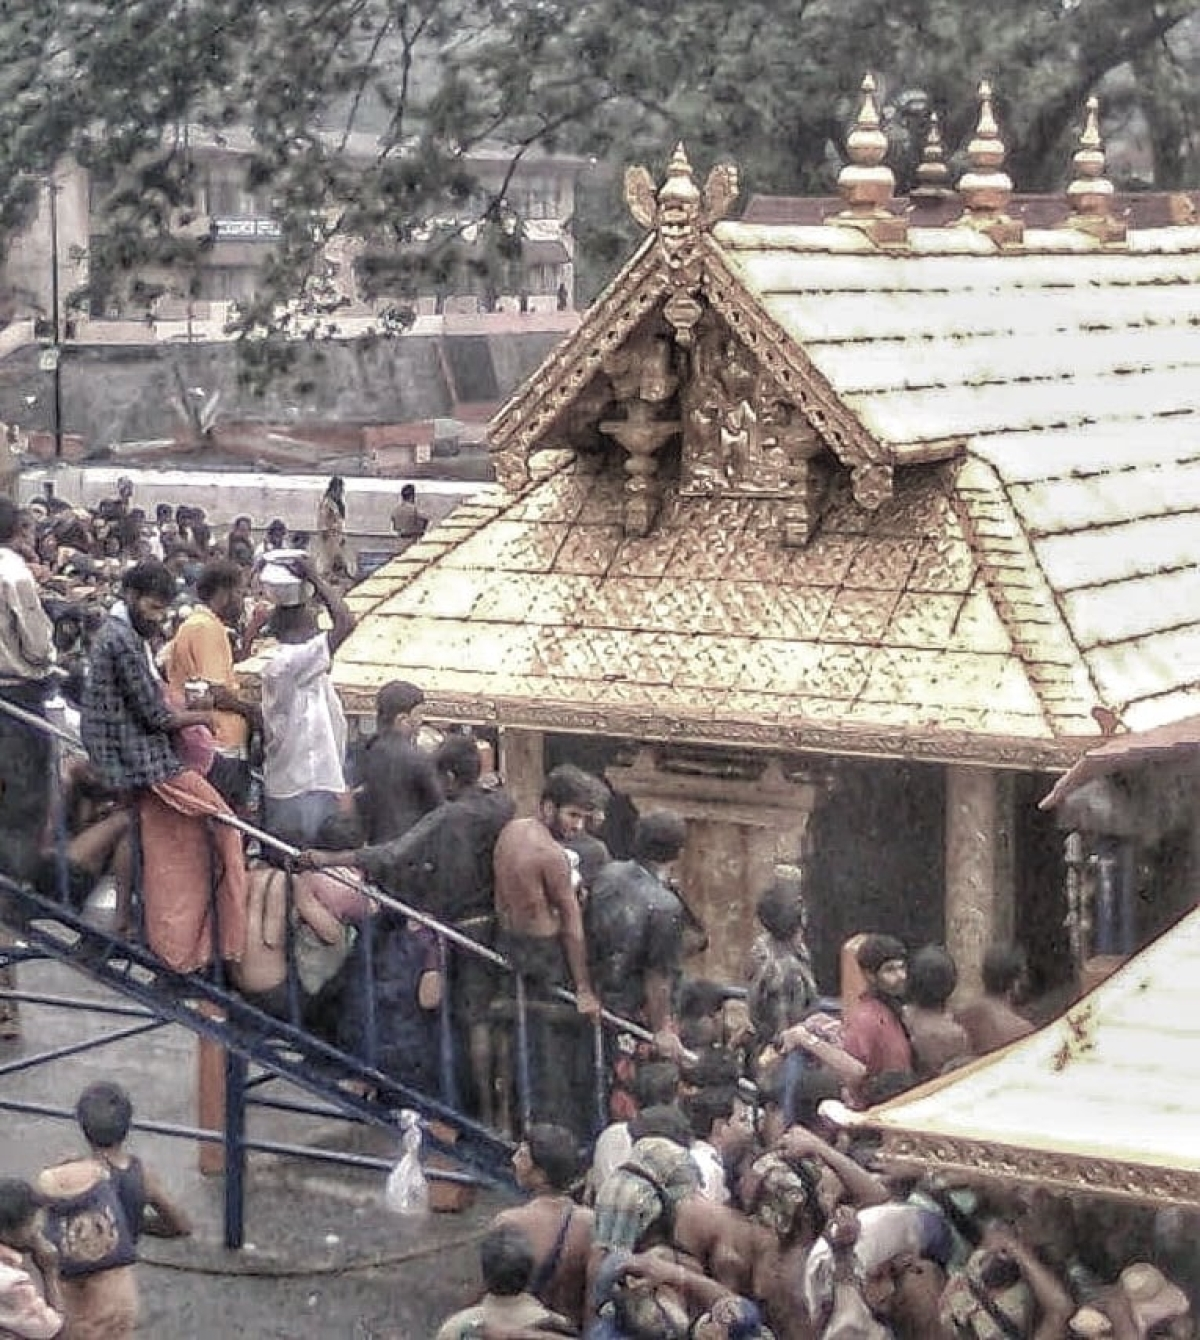 Sabarimala: A summary of the 8-day long hearing in the Supreme Court